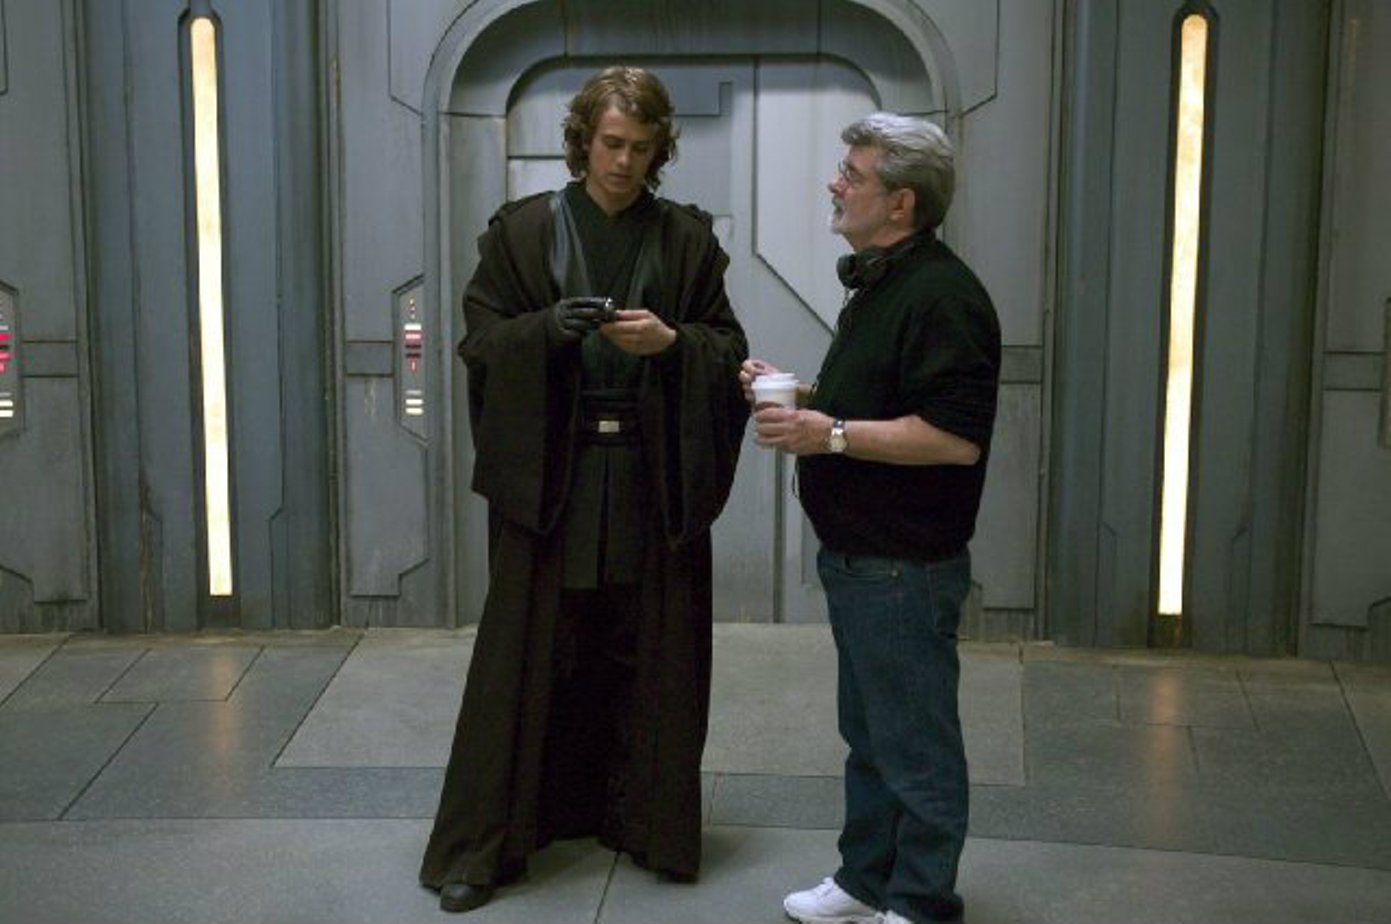 character analysis of anakin skywalker in revenge of the sith a star wars movie by george lucas Star wars is turning 40, and four decades have spawned eight movies and endless characters, be they jedi or sith,  in george lucas' movie  anakin skywalker: the story of star wars, four.